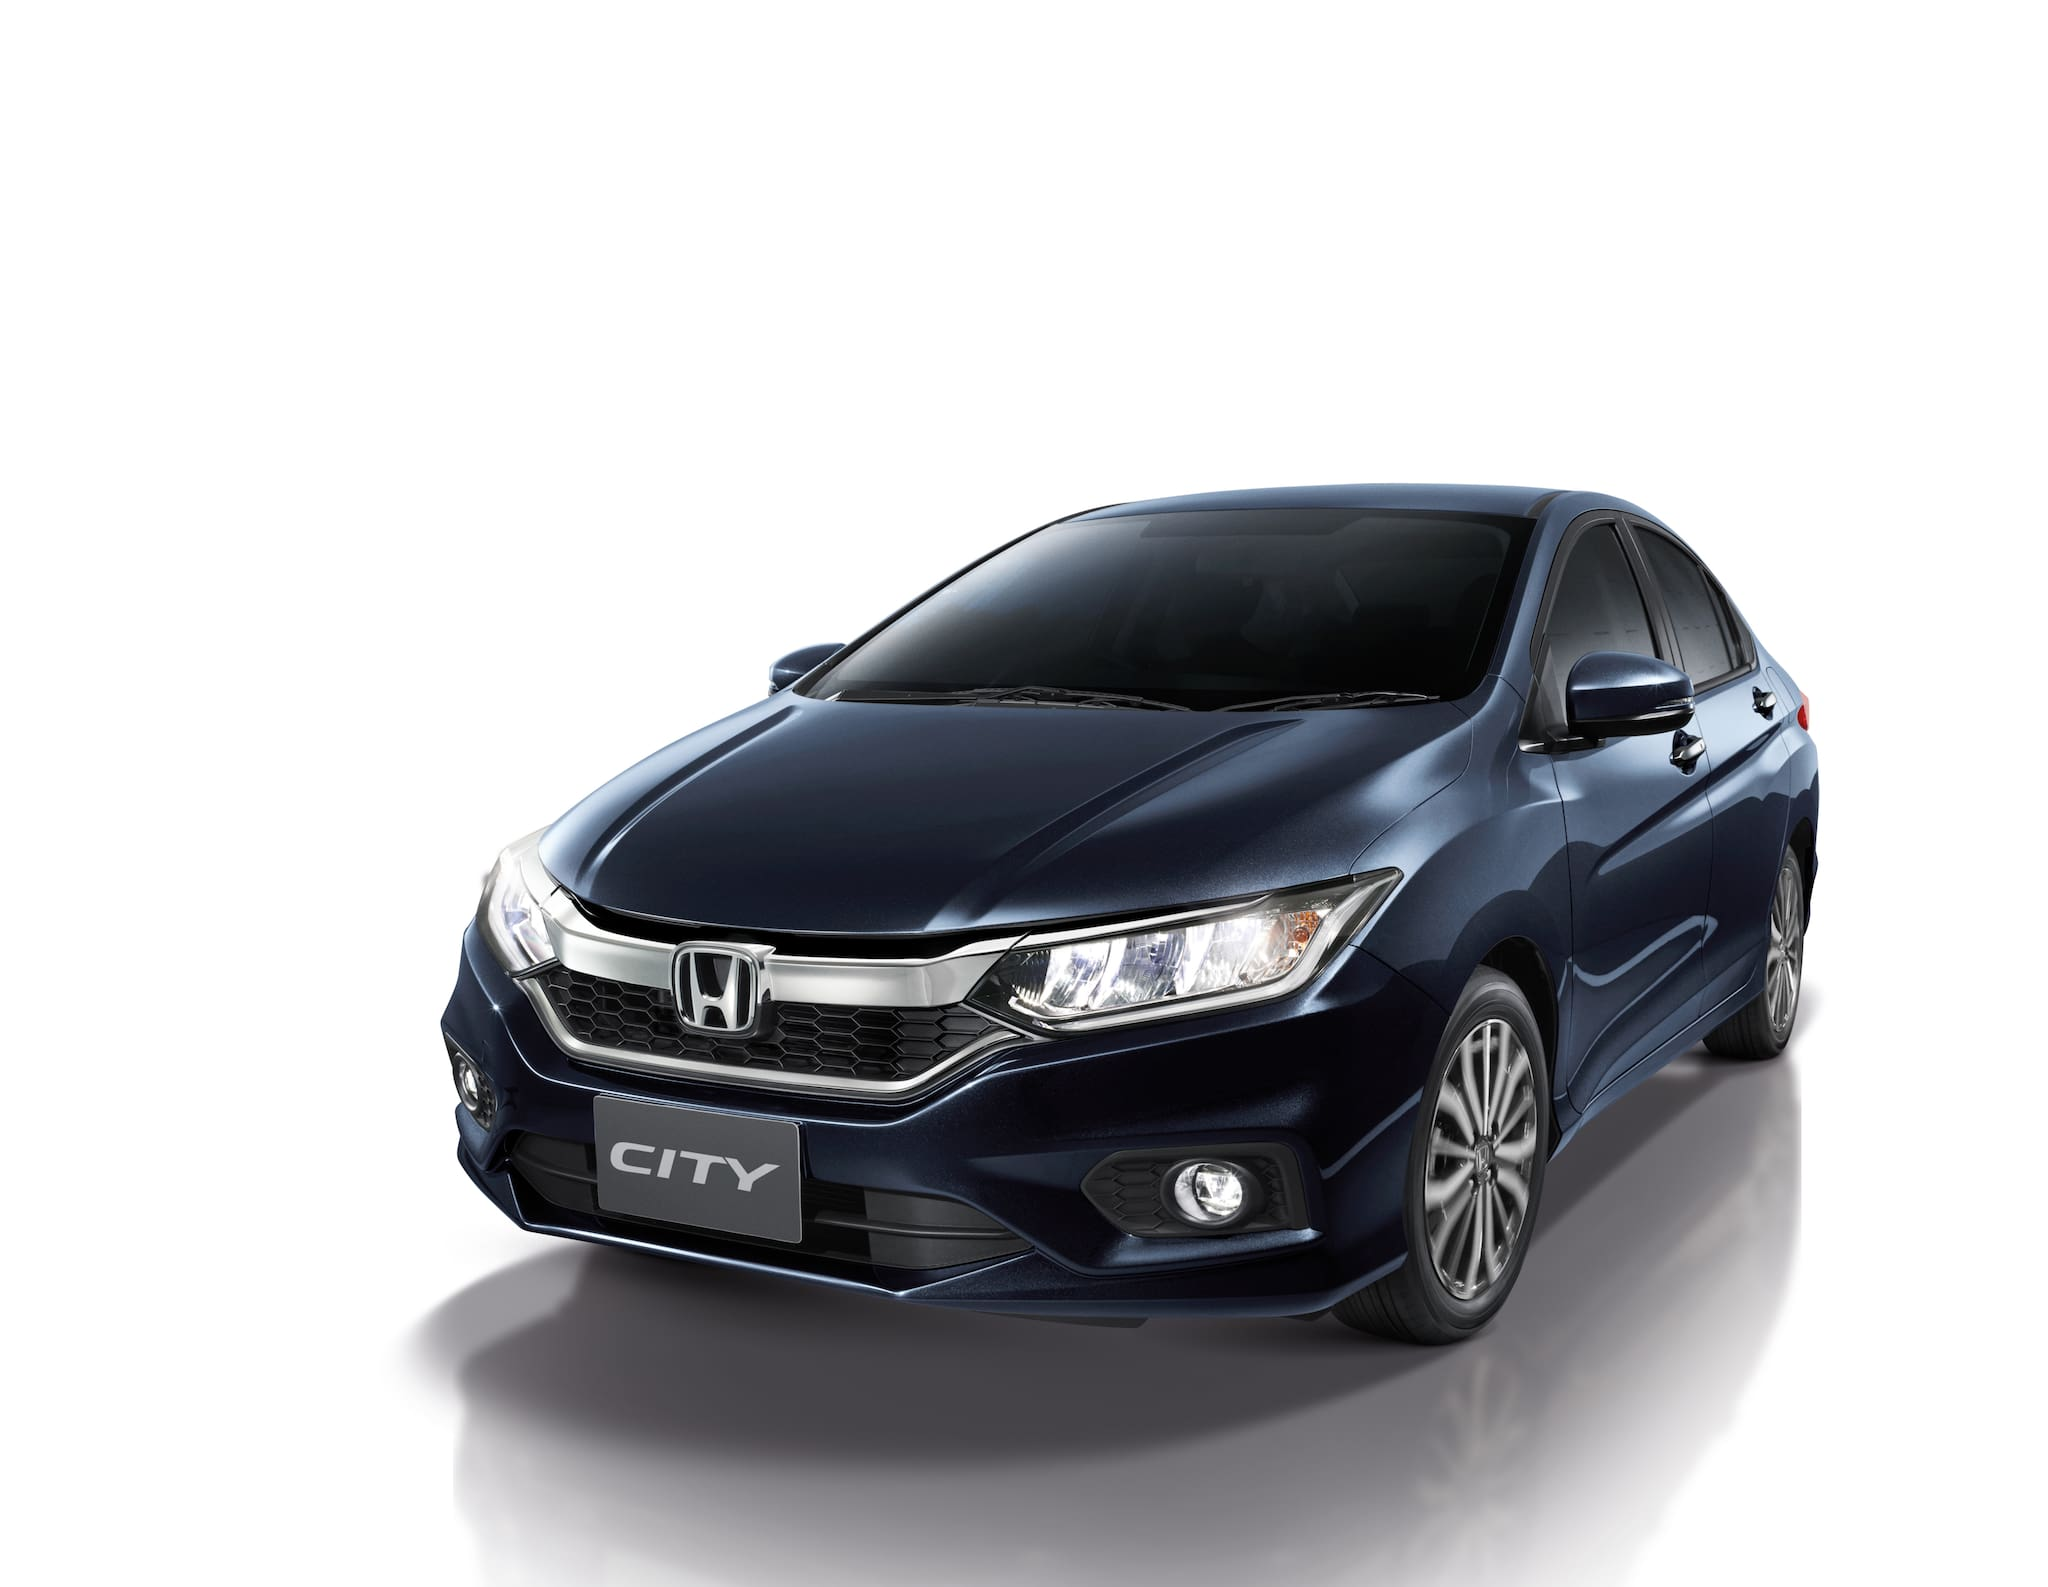 Honda Sees Its Best Automobile Sales Record in Asia & Oceania Region in 2017